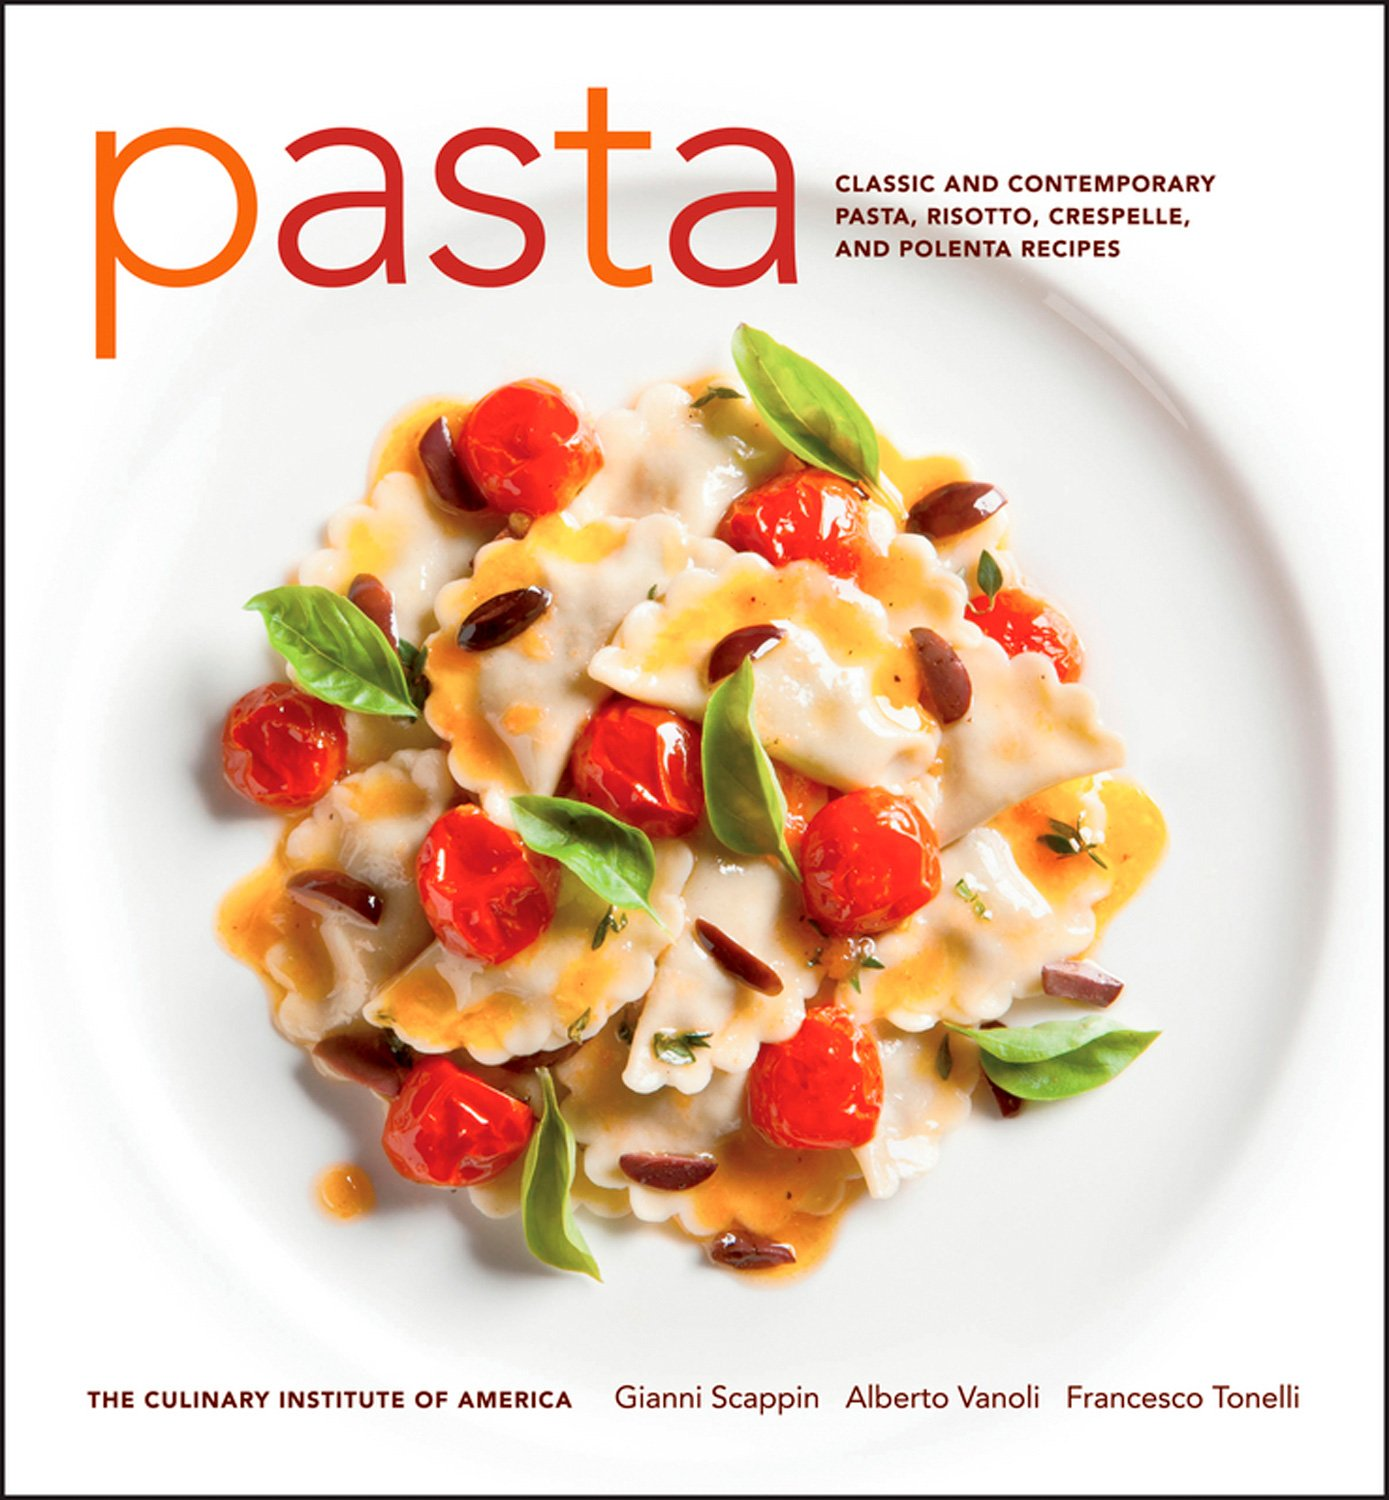 Download Pasta: Classic and Contemporary Pasta, Risotto,Crespelle, and Polenta Recipes (at Home with The Culinary Institute of America) ebook